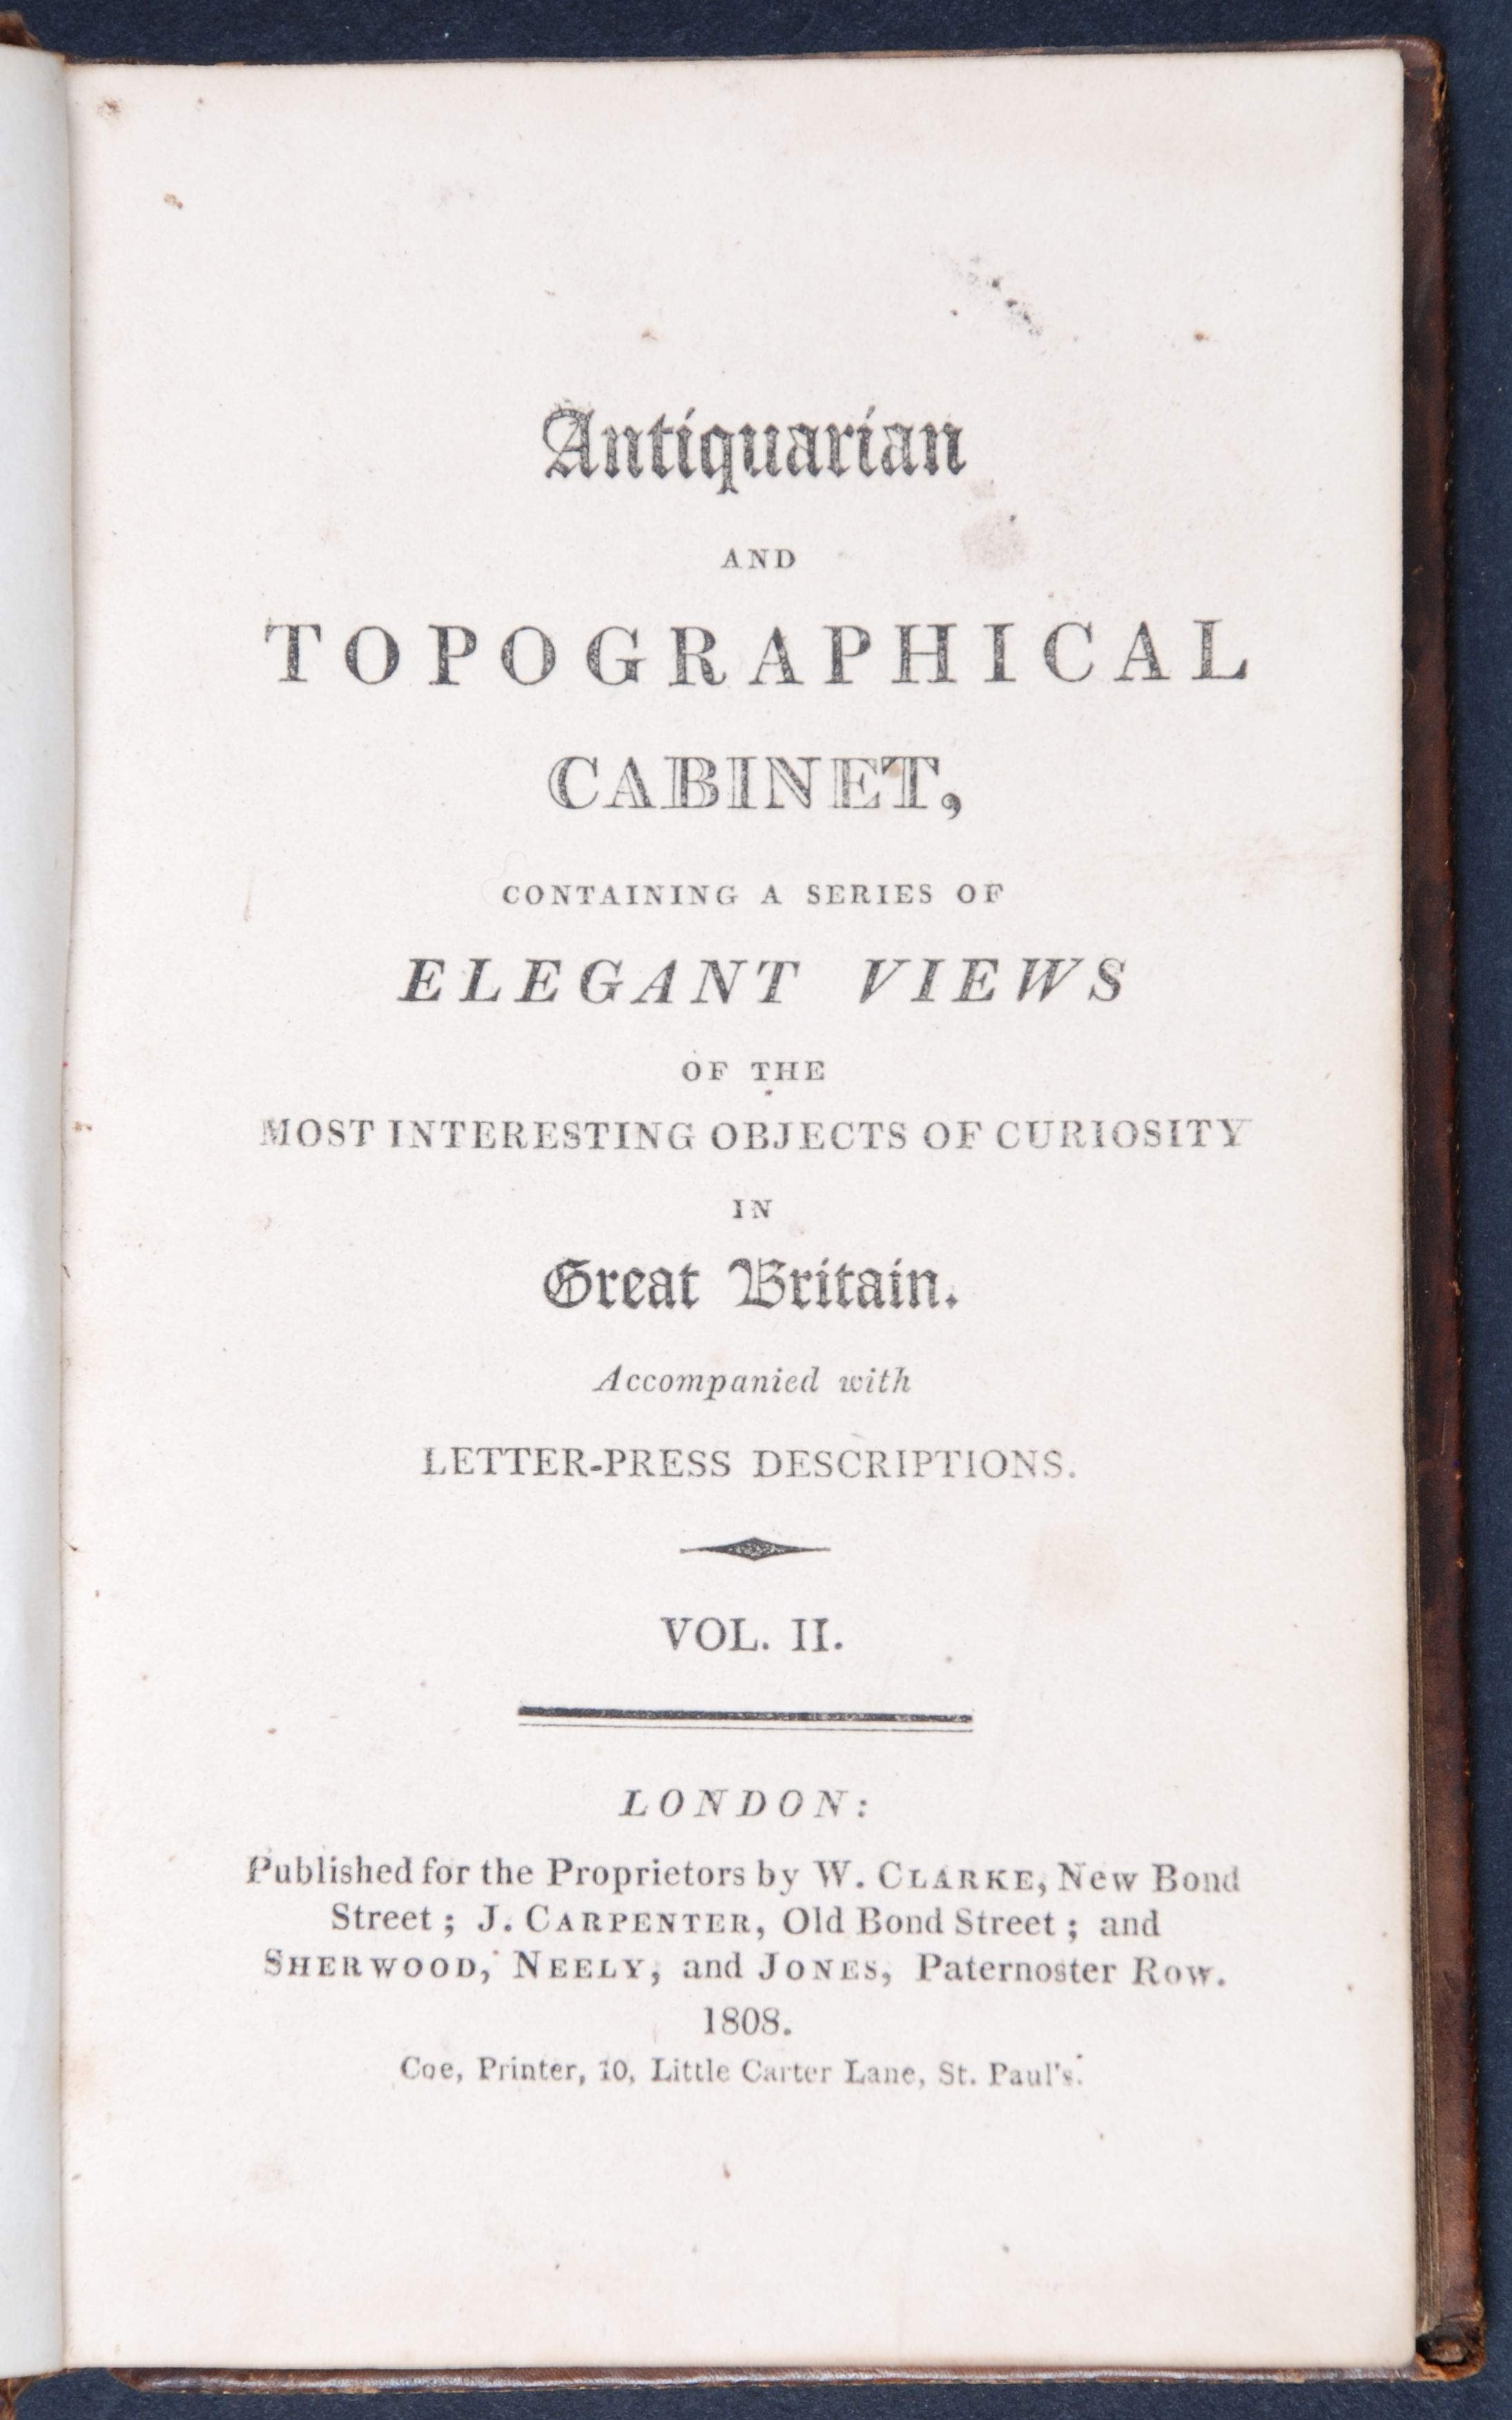 James Storer. Antiquarian and topographical cabinet: containing a series of elegant views of the most interesting objects of curiosity in Great Britain. Vol. 2. London: Published for the Proprietors by W. Clarke, 1808.